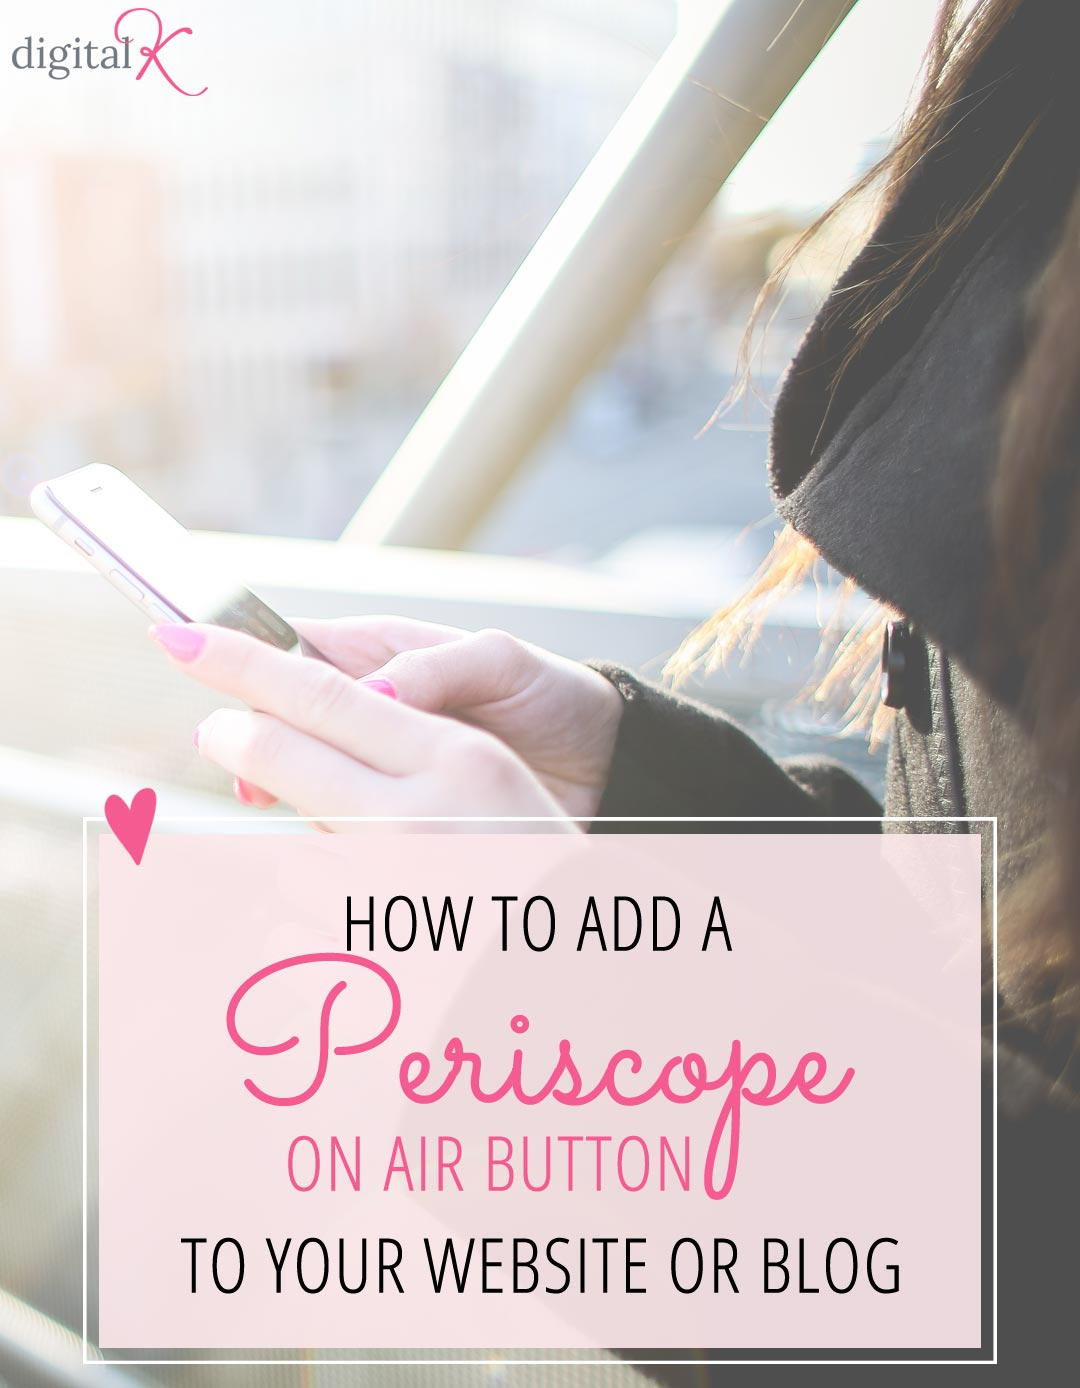 How to Add a Periscope On Air Button to your Website or Blog